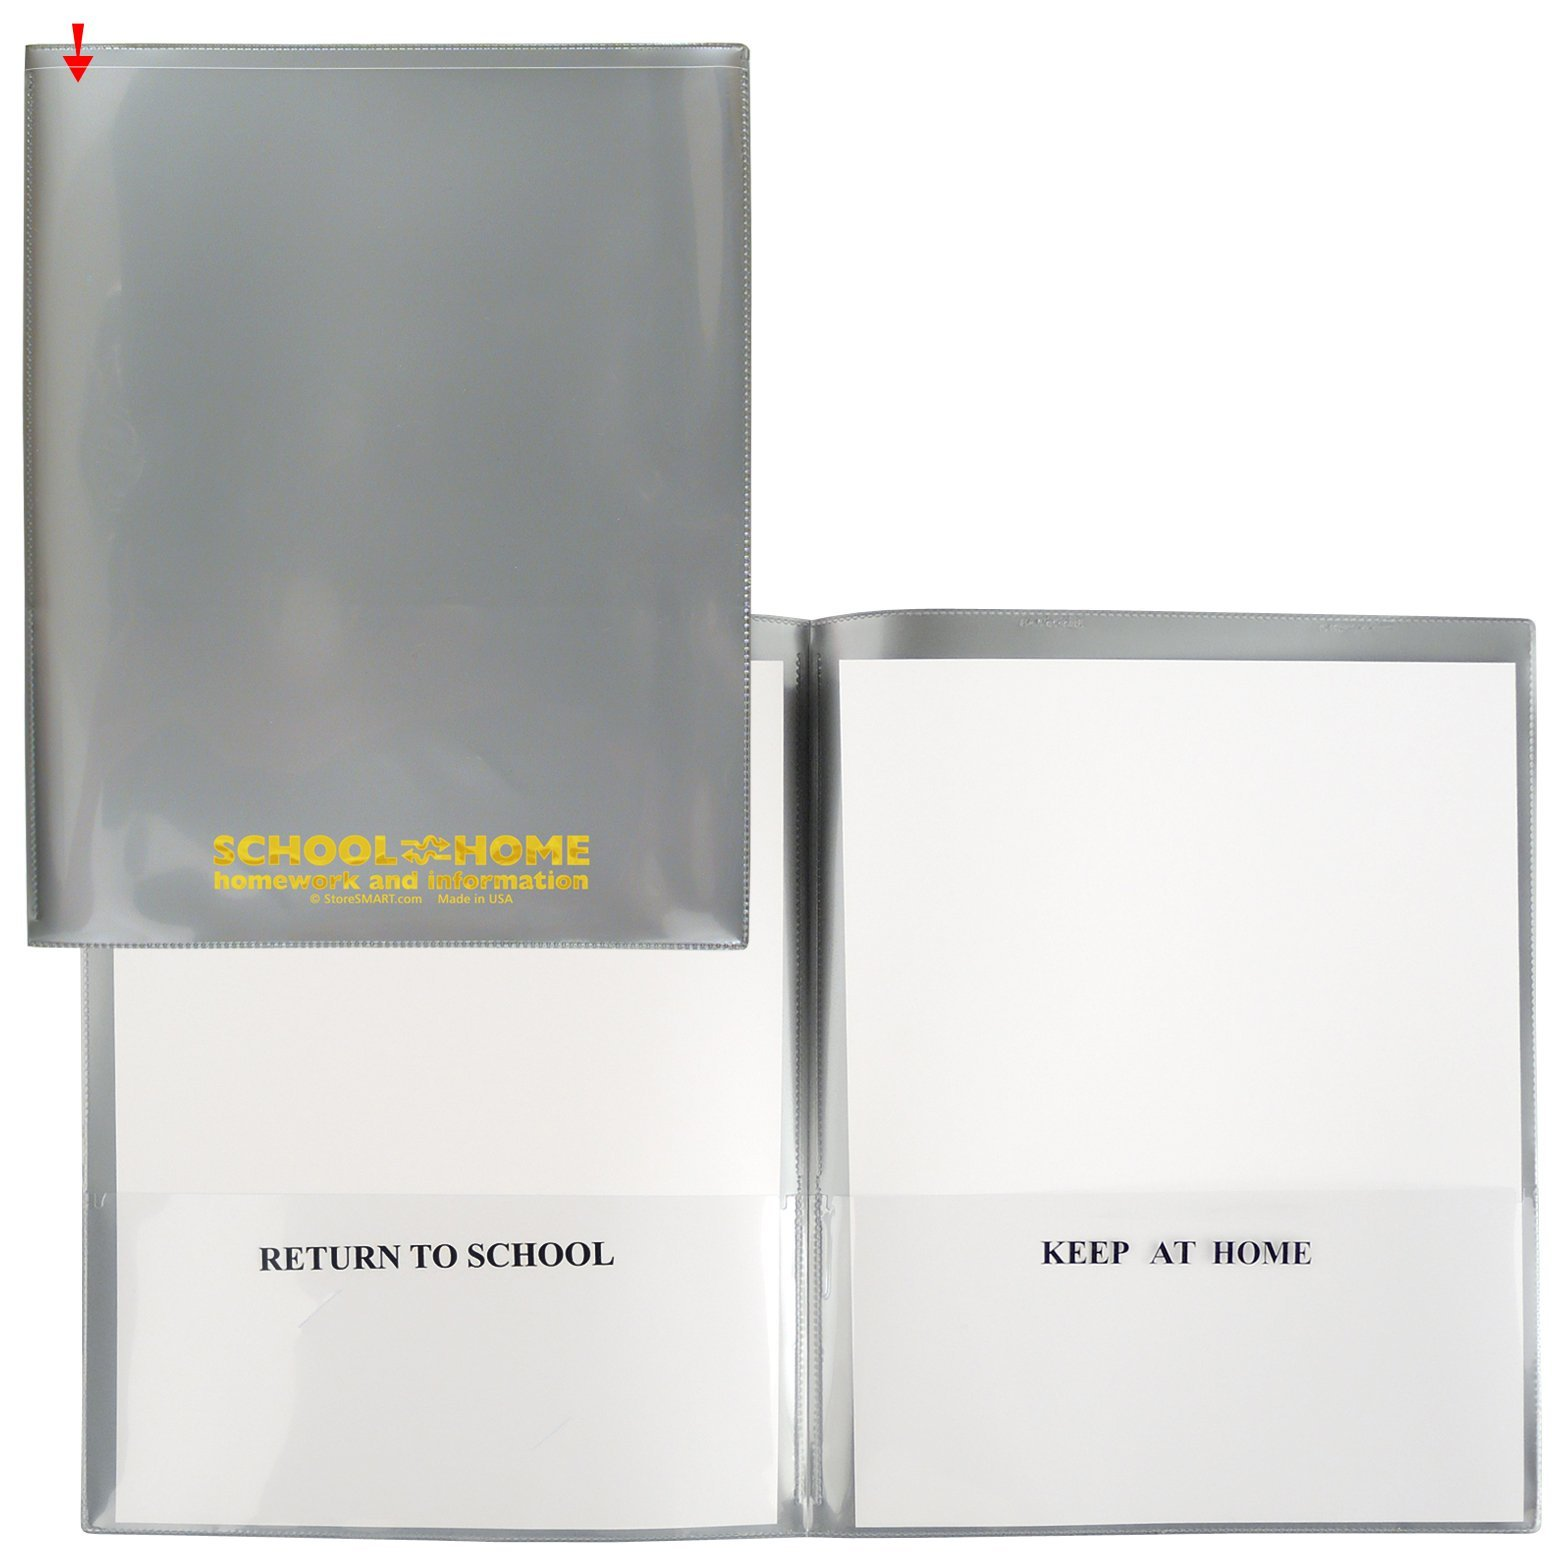 StoreSMART - School / Home Folders - Silver - 100-Pack - Archival Durable Plastic - Homework and Information - SH900SV-S100